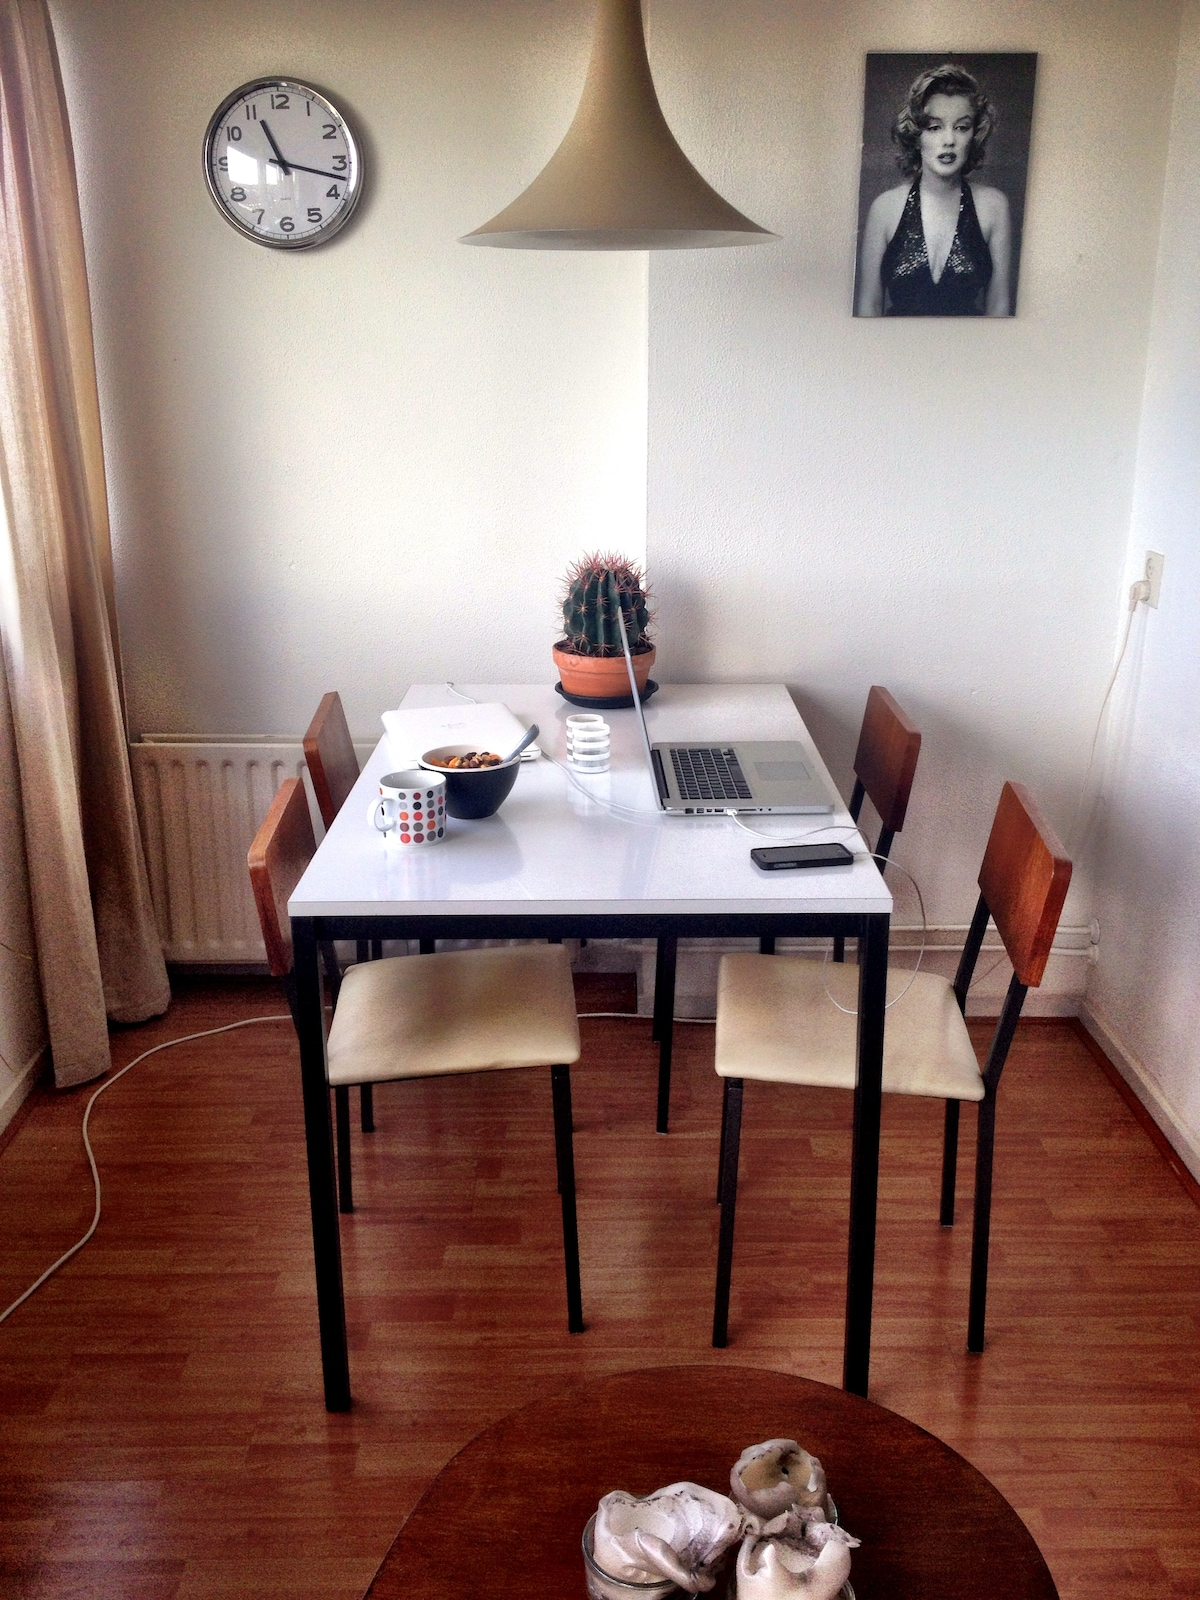 Dinner table with industrial design chairs 'Kuperus Almelo'